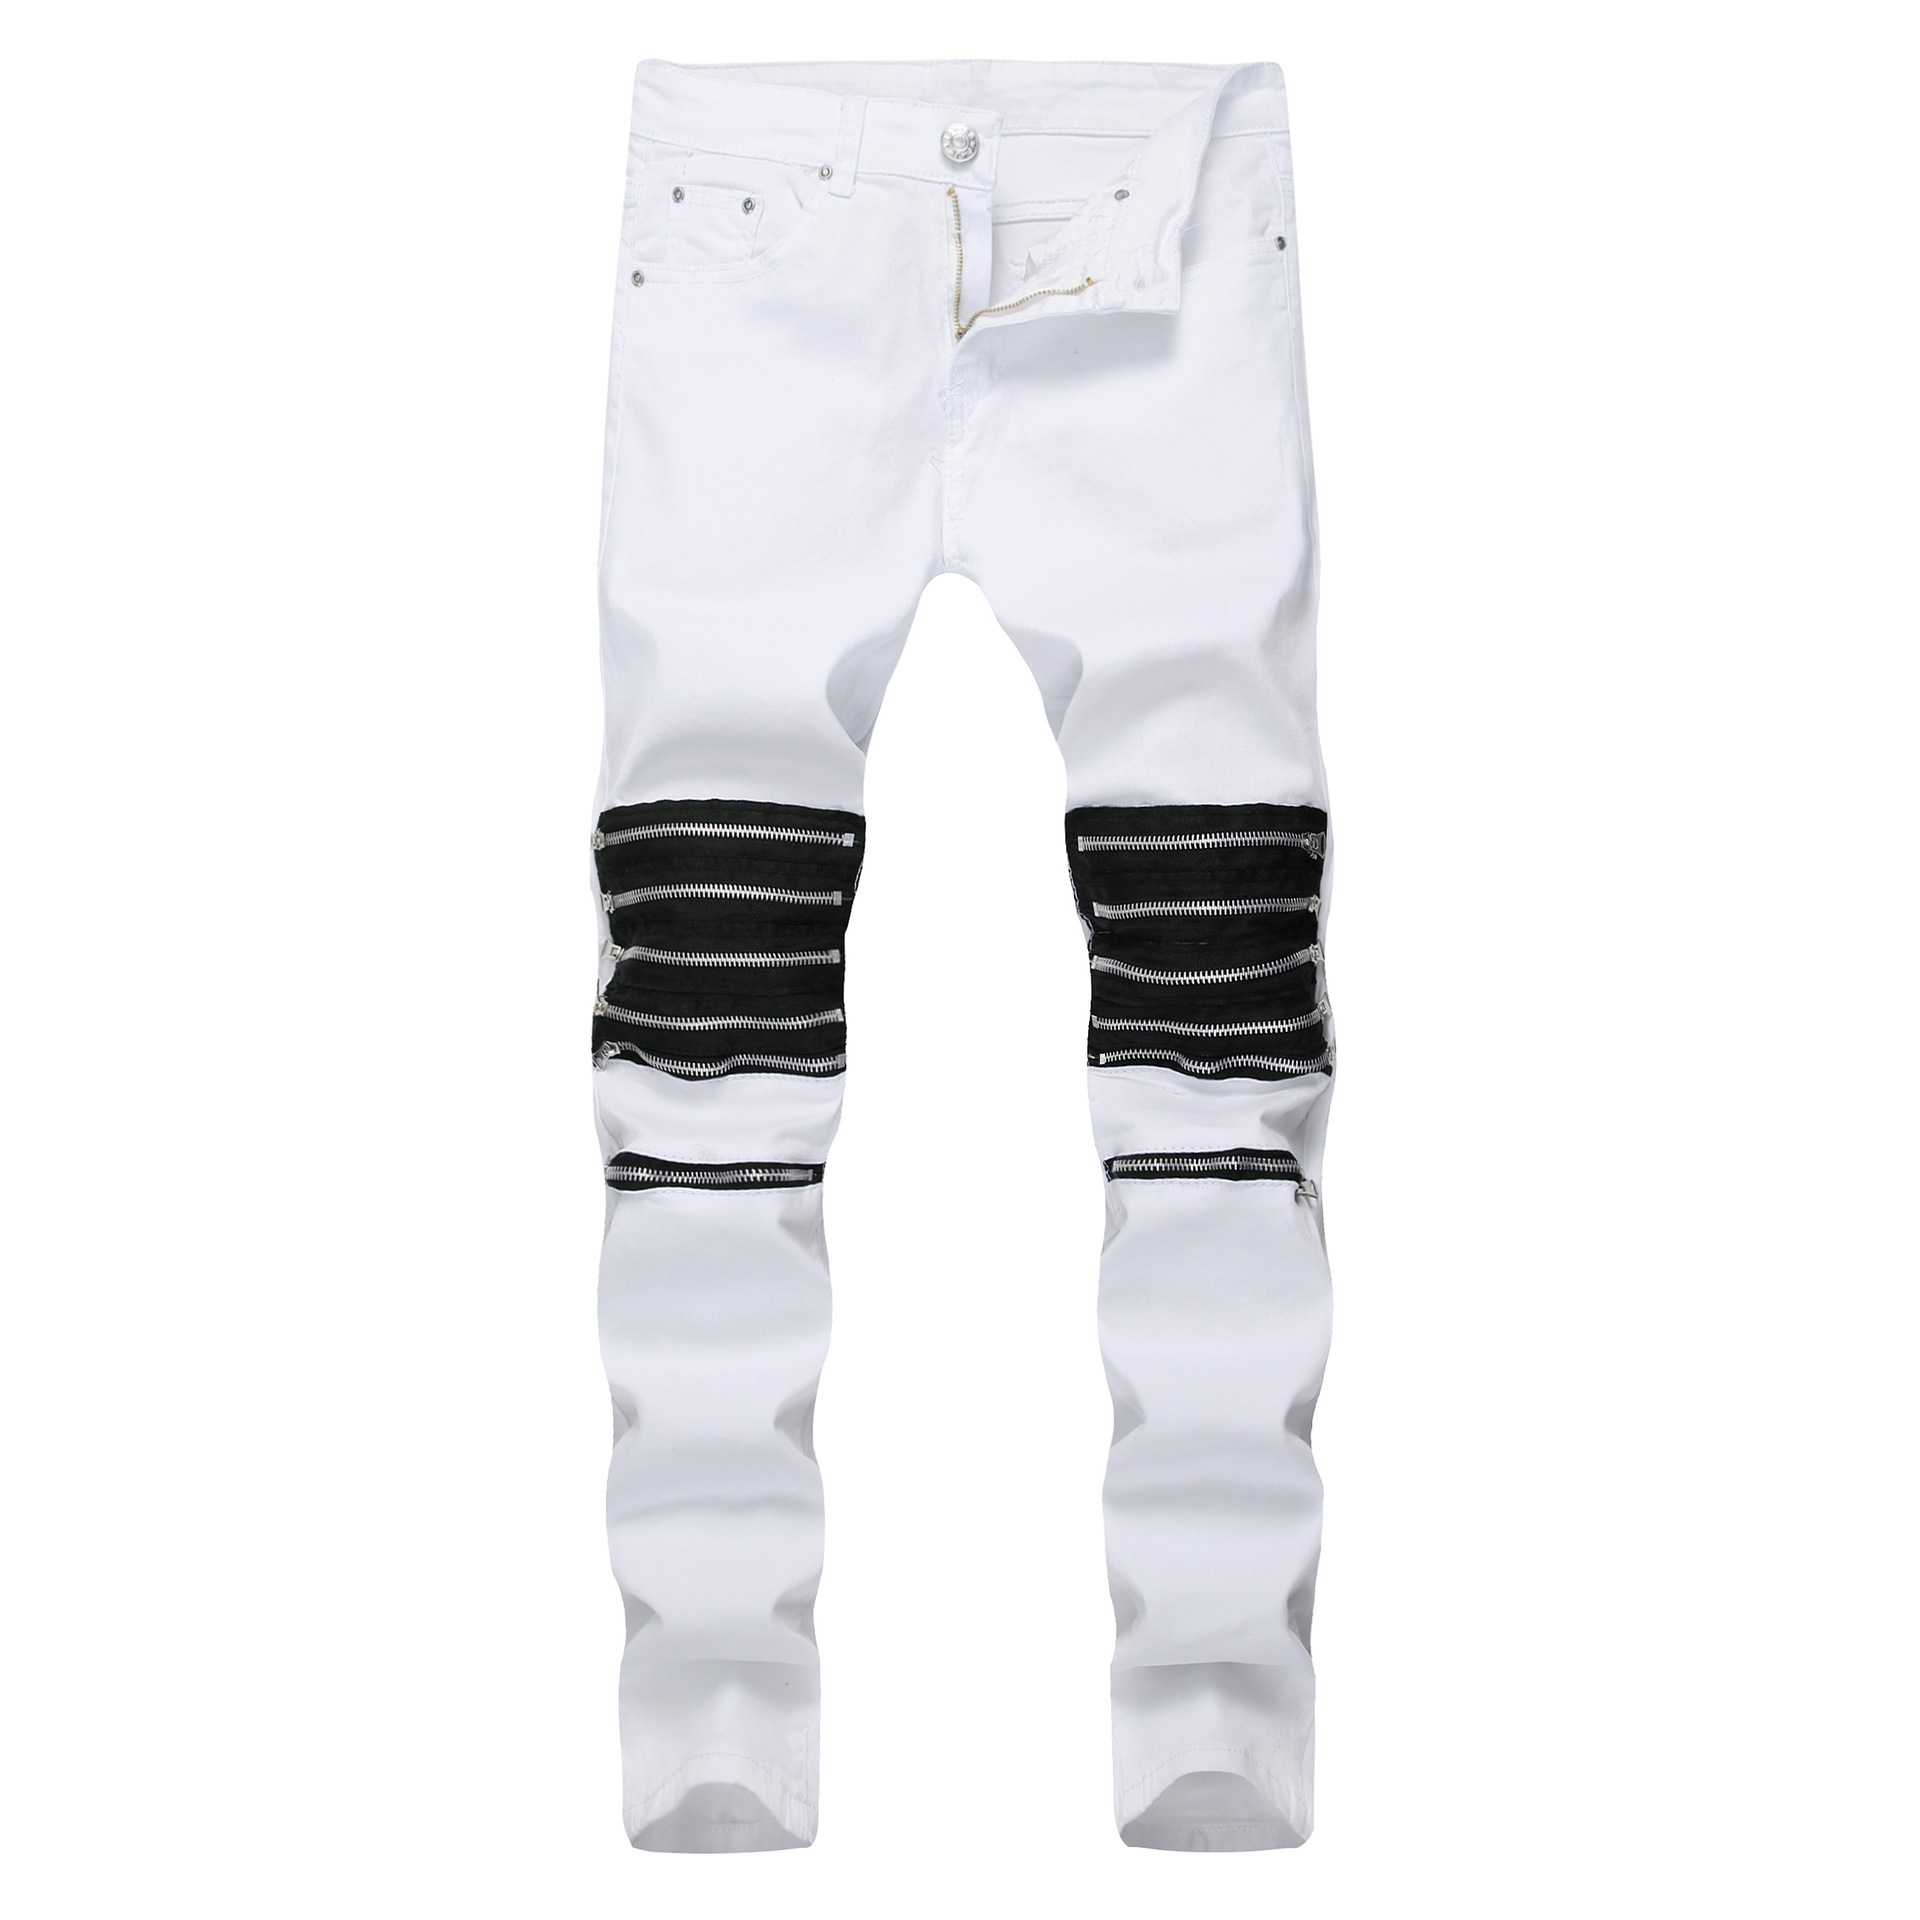 2019 Men's Casual Europe US Style Small Legs Slim Body Broken Hole Motorcycle Zipper Cotton Jeans Fashion Dropshipping Pants